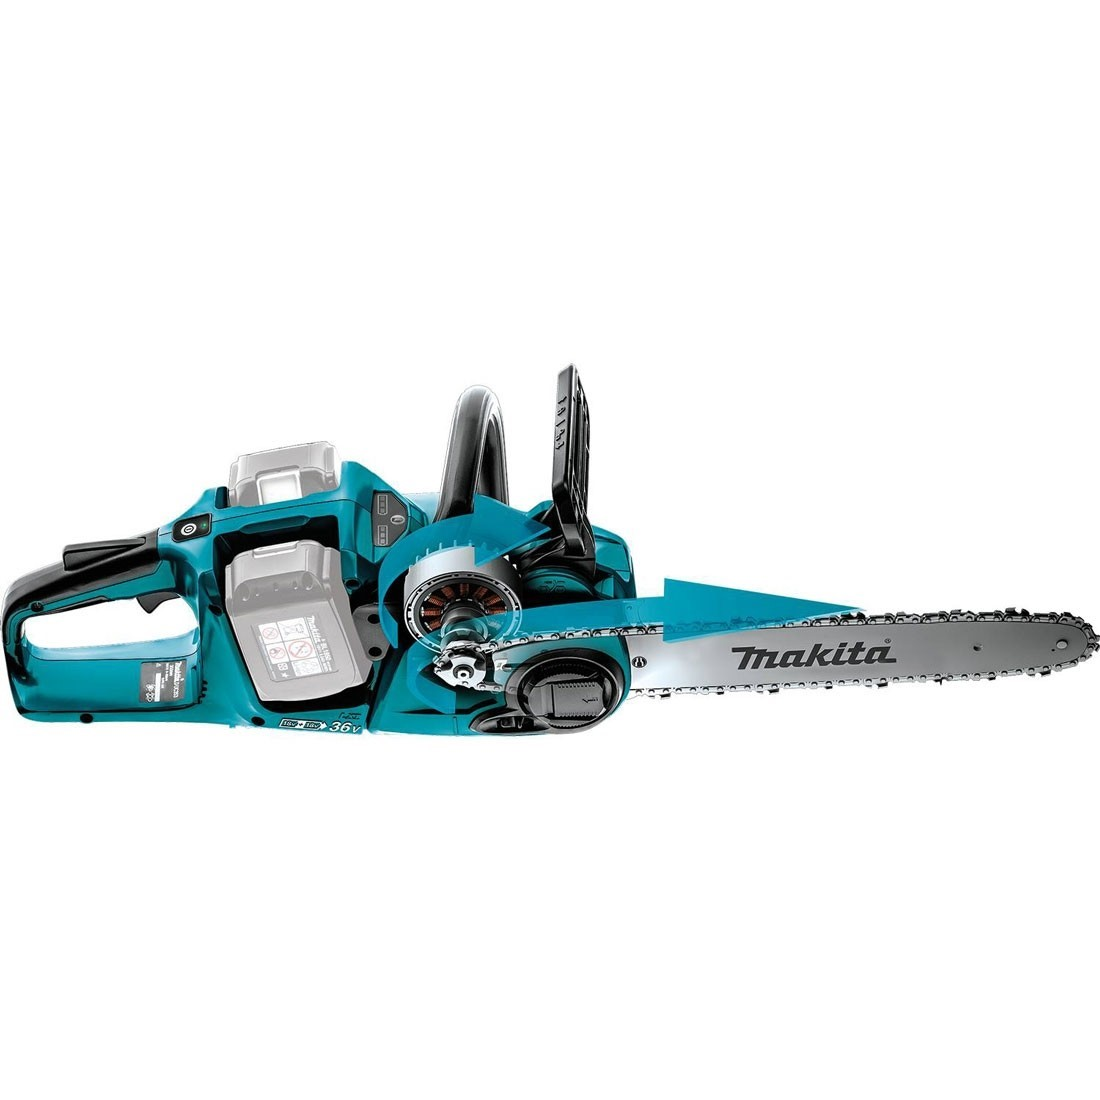 Makita DUH551Z Twin LXT 18v Bare Unit 36v Lithium Ion Hedge Trimmer